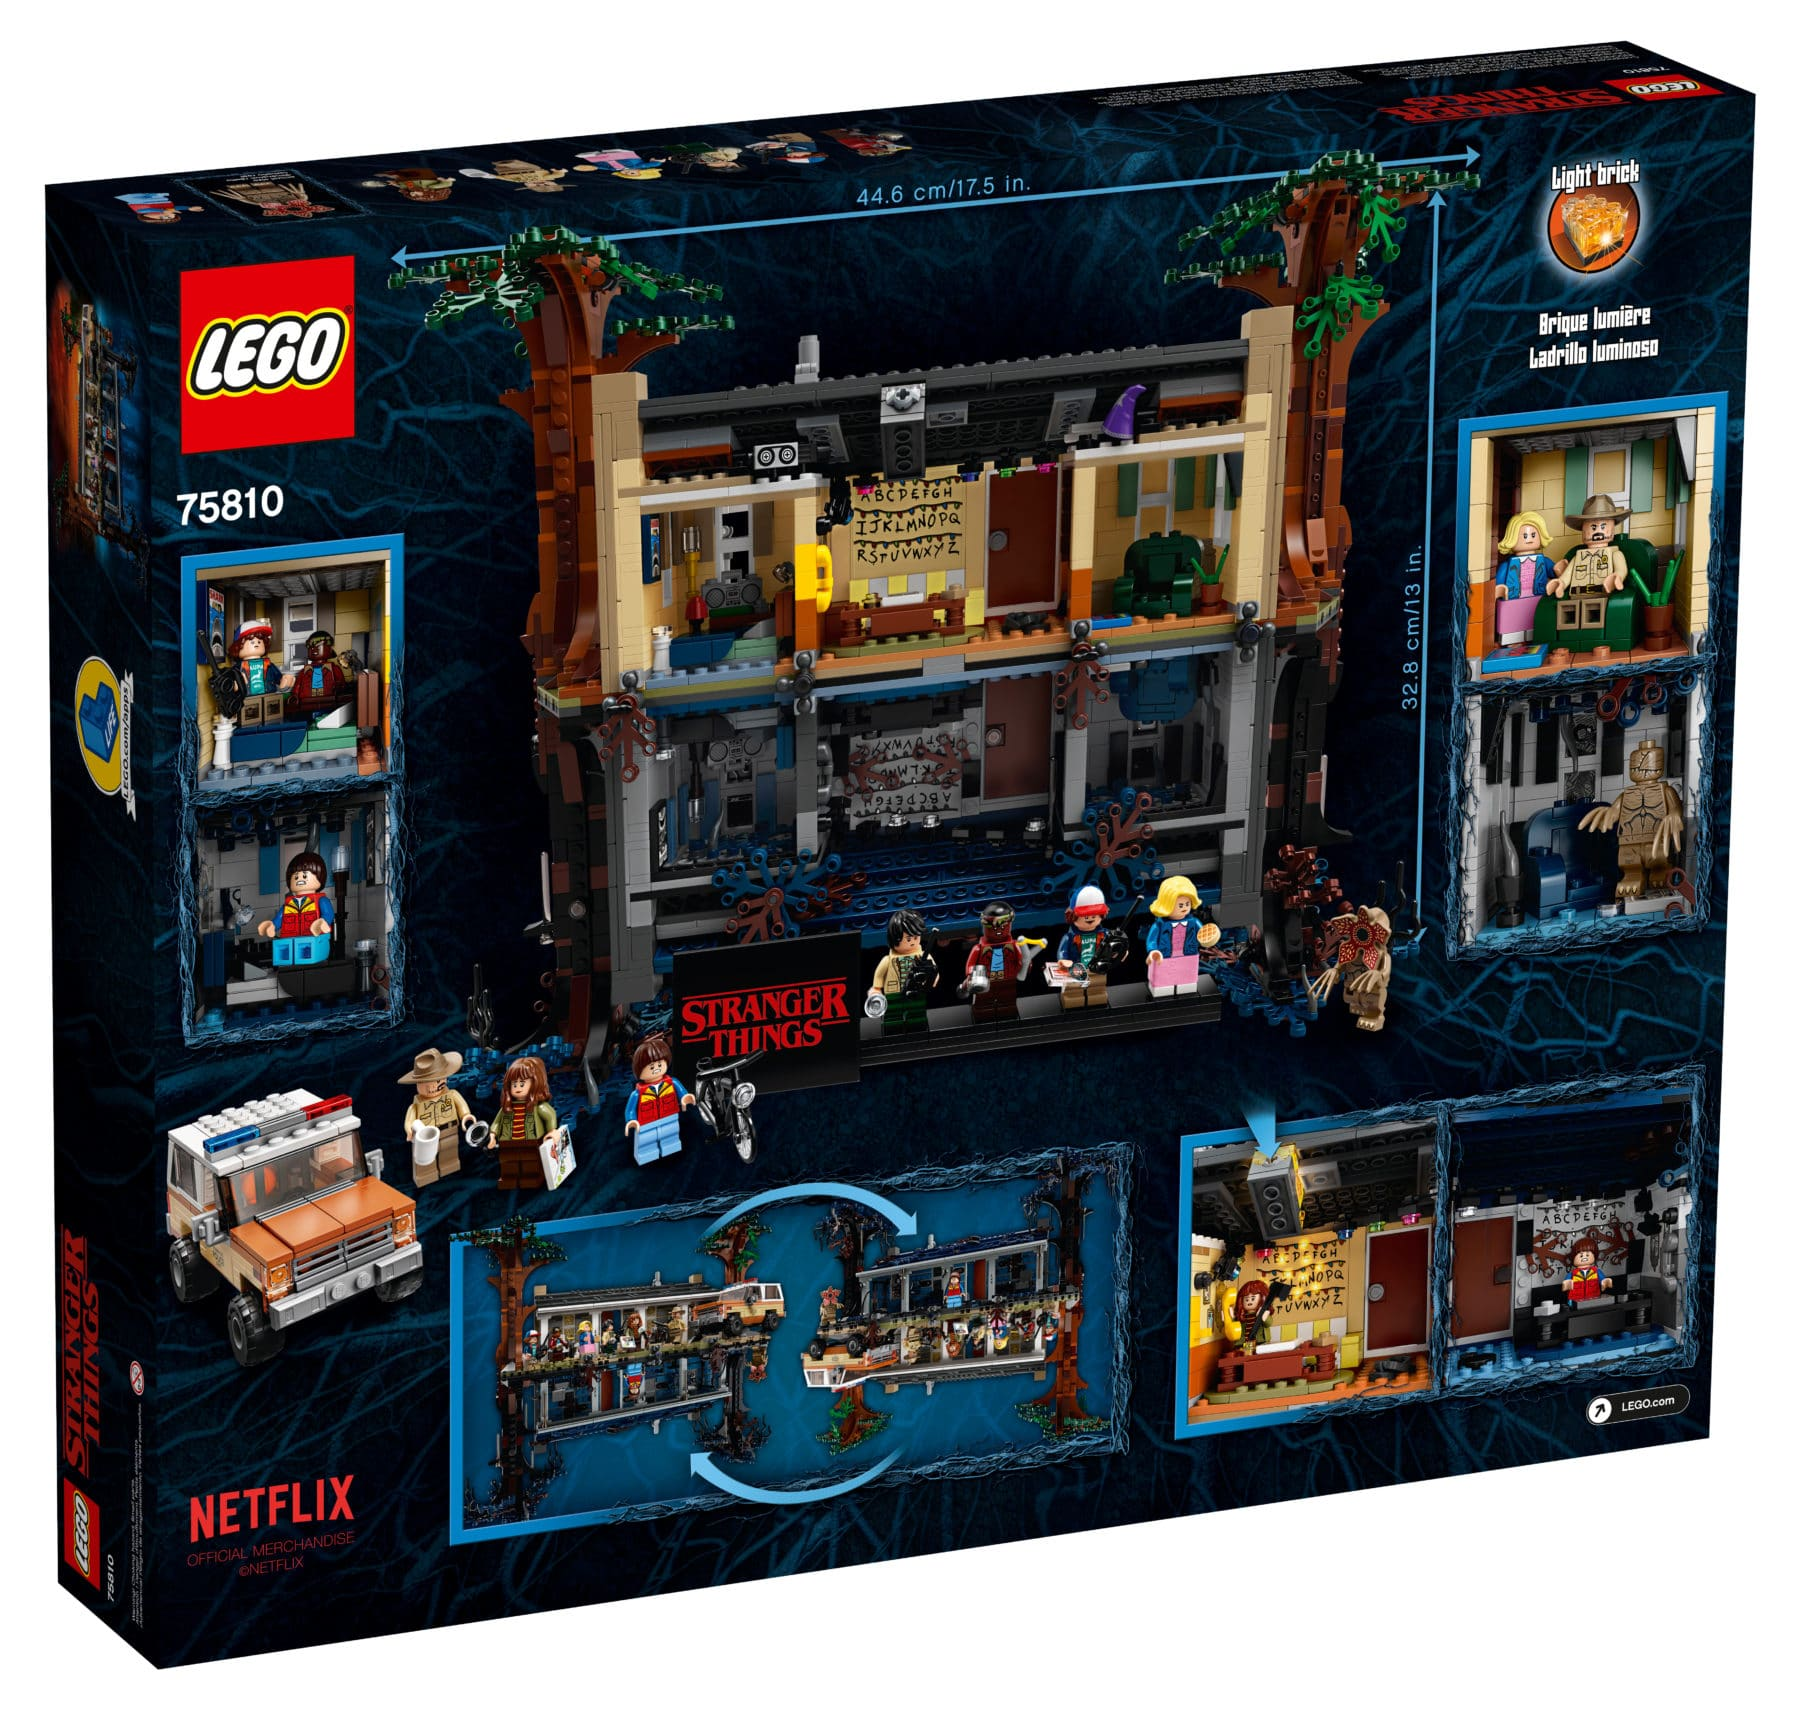 lego-stranger-things-75810-die-andere-seite-box-back